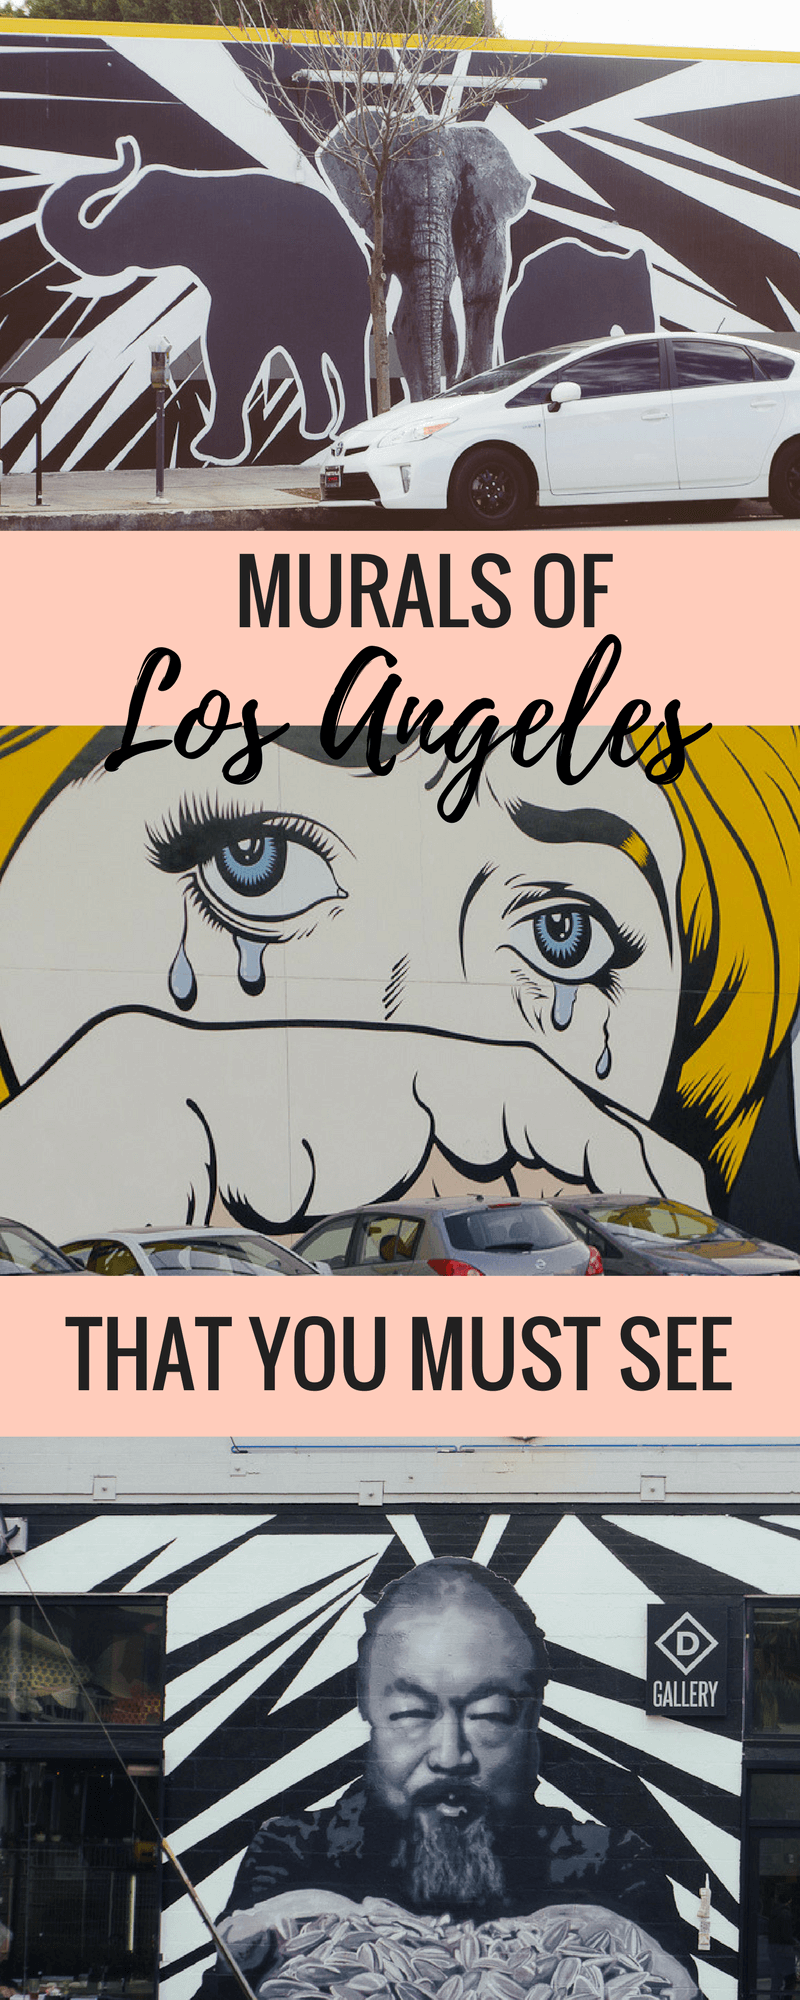 Los angeles Mural guide is the best DTLA and Abbot Kinney street art guide for Los Angeles, California, USA. Includes a self guided tour of downtown Los Angeles murals, graffiti and street art. #California #Streetart #murals #losangeles #graffiti #DTLA